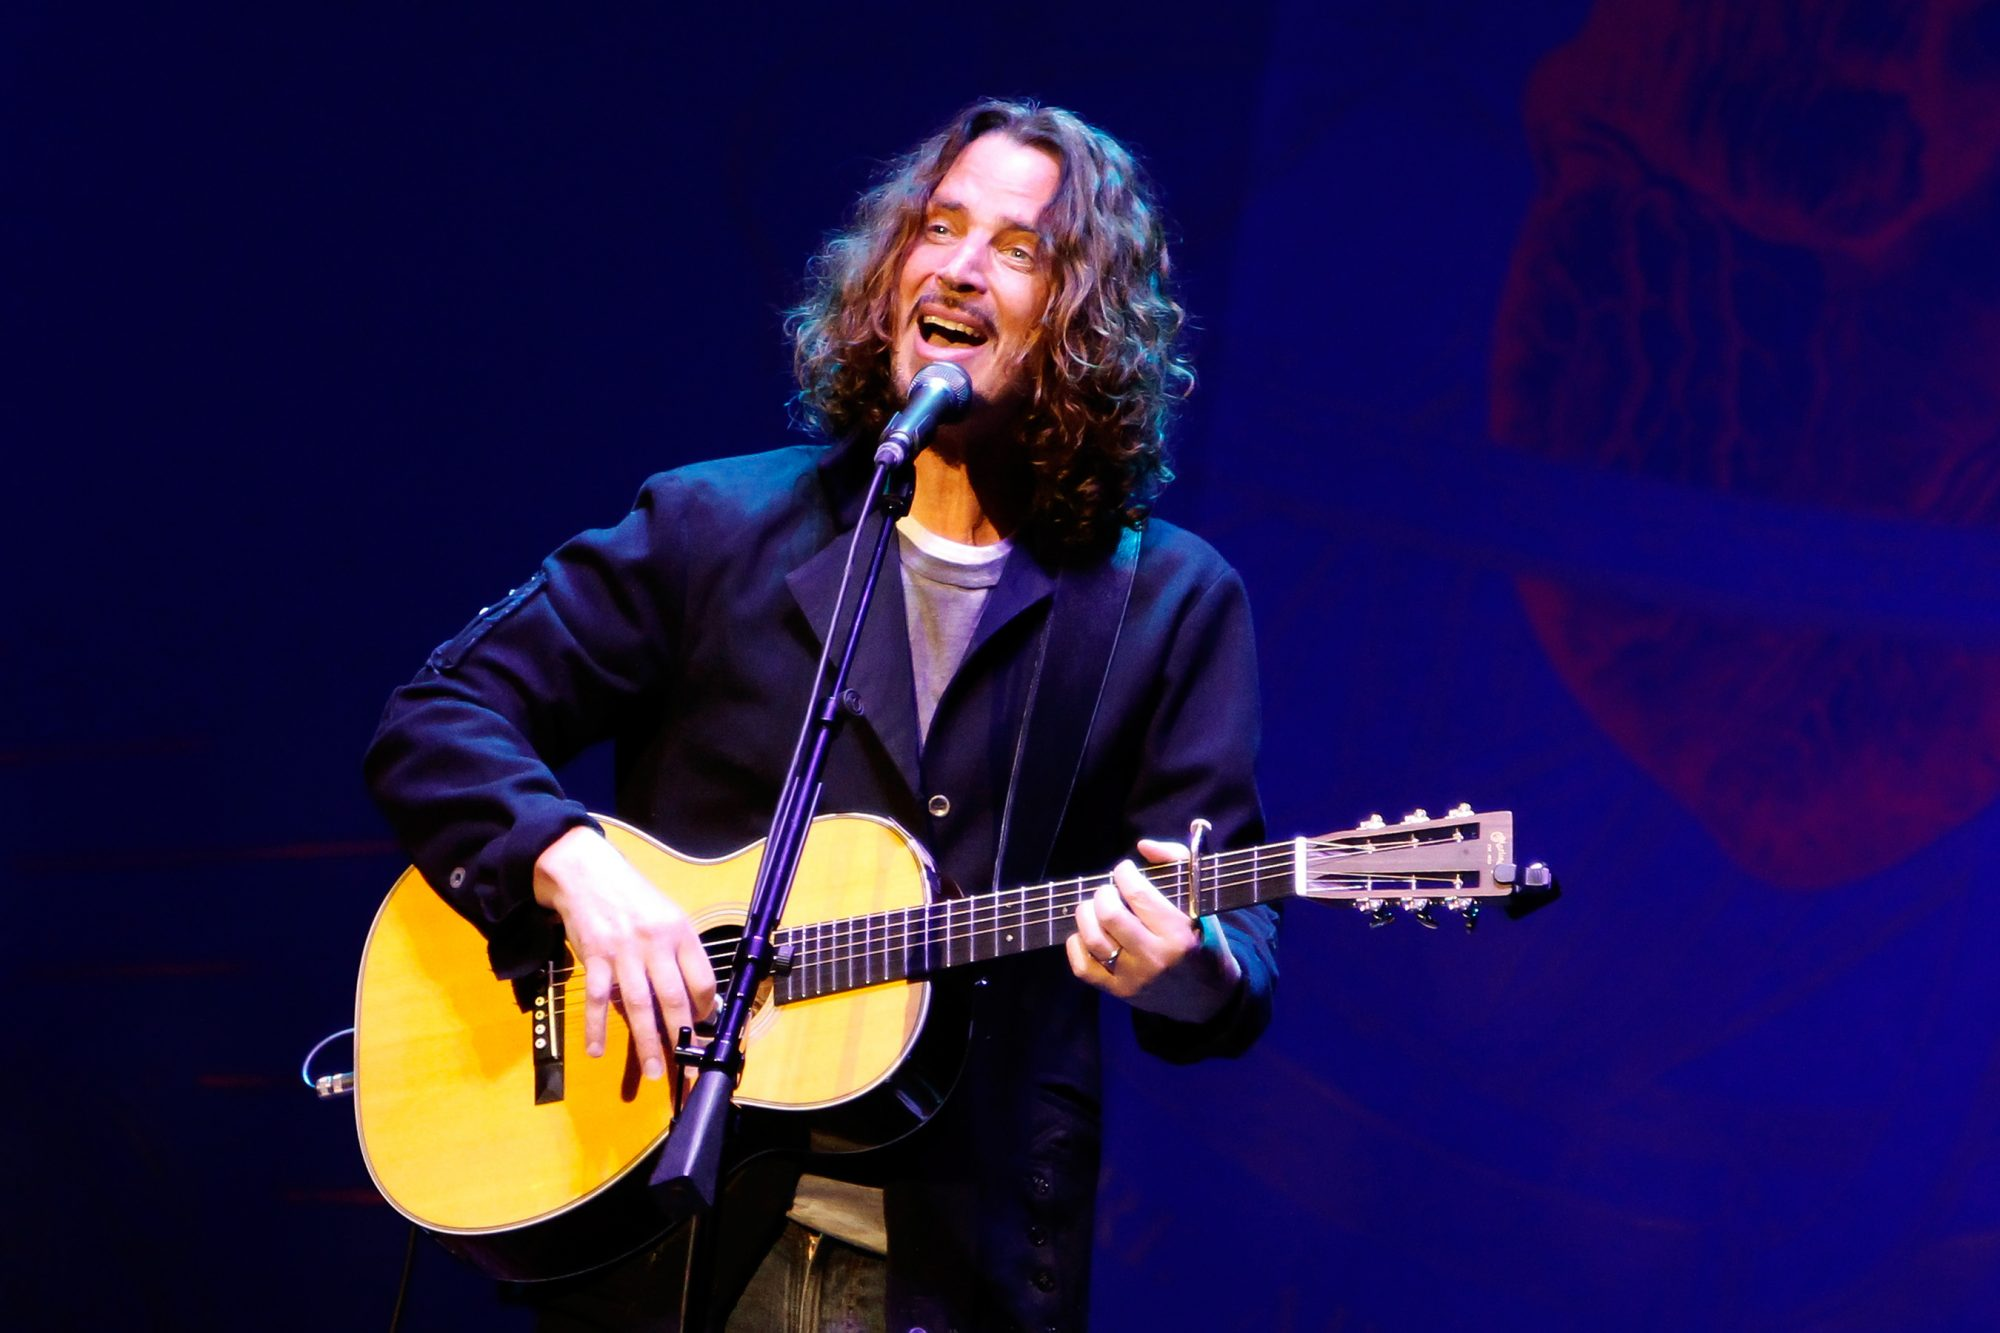 Chris Cornell Performs At Royal Opera house